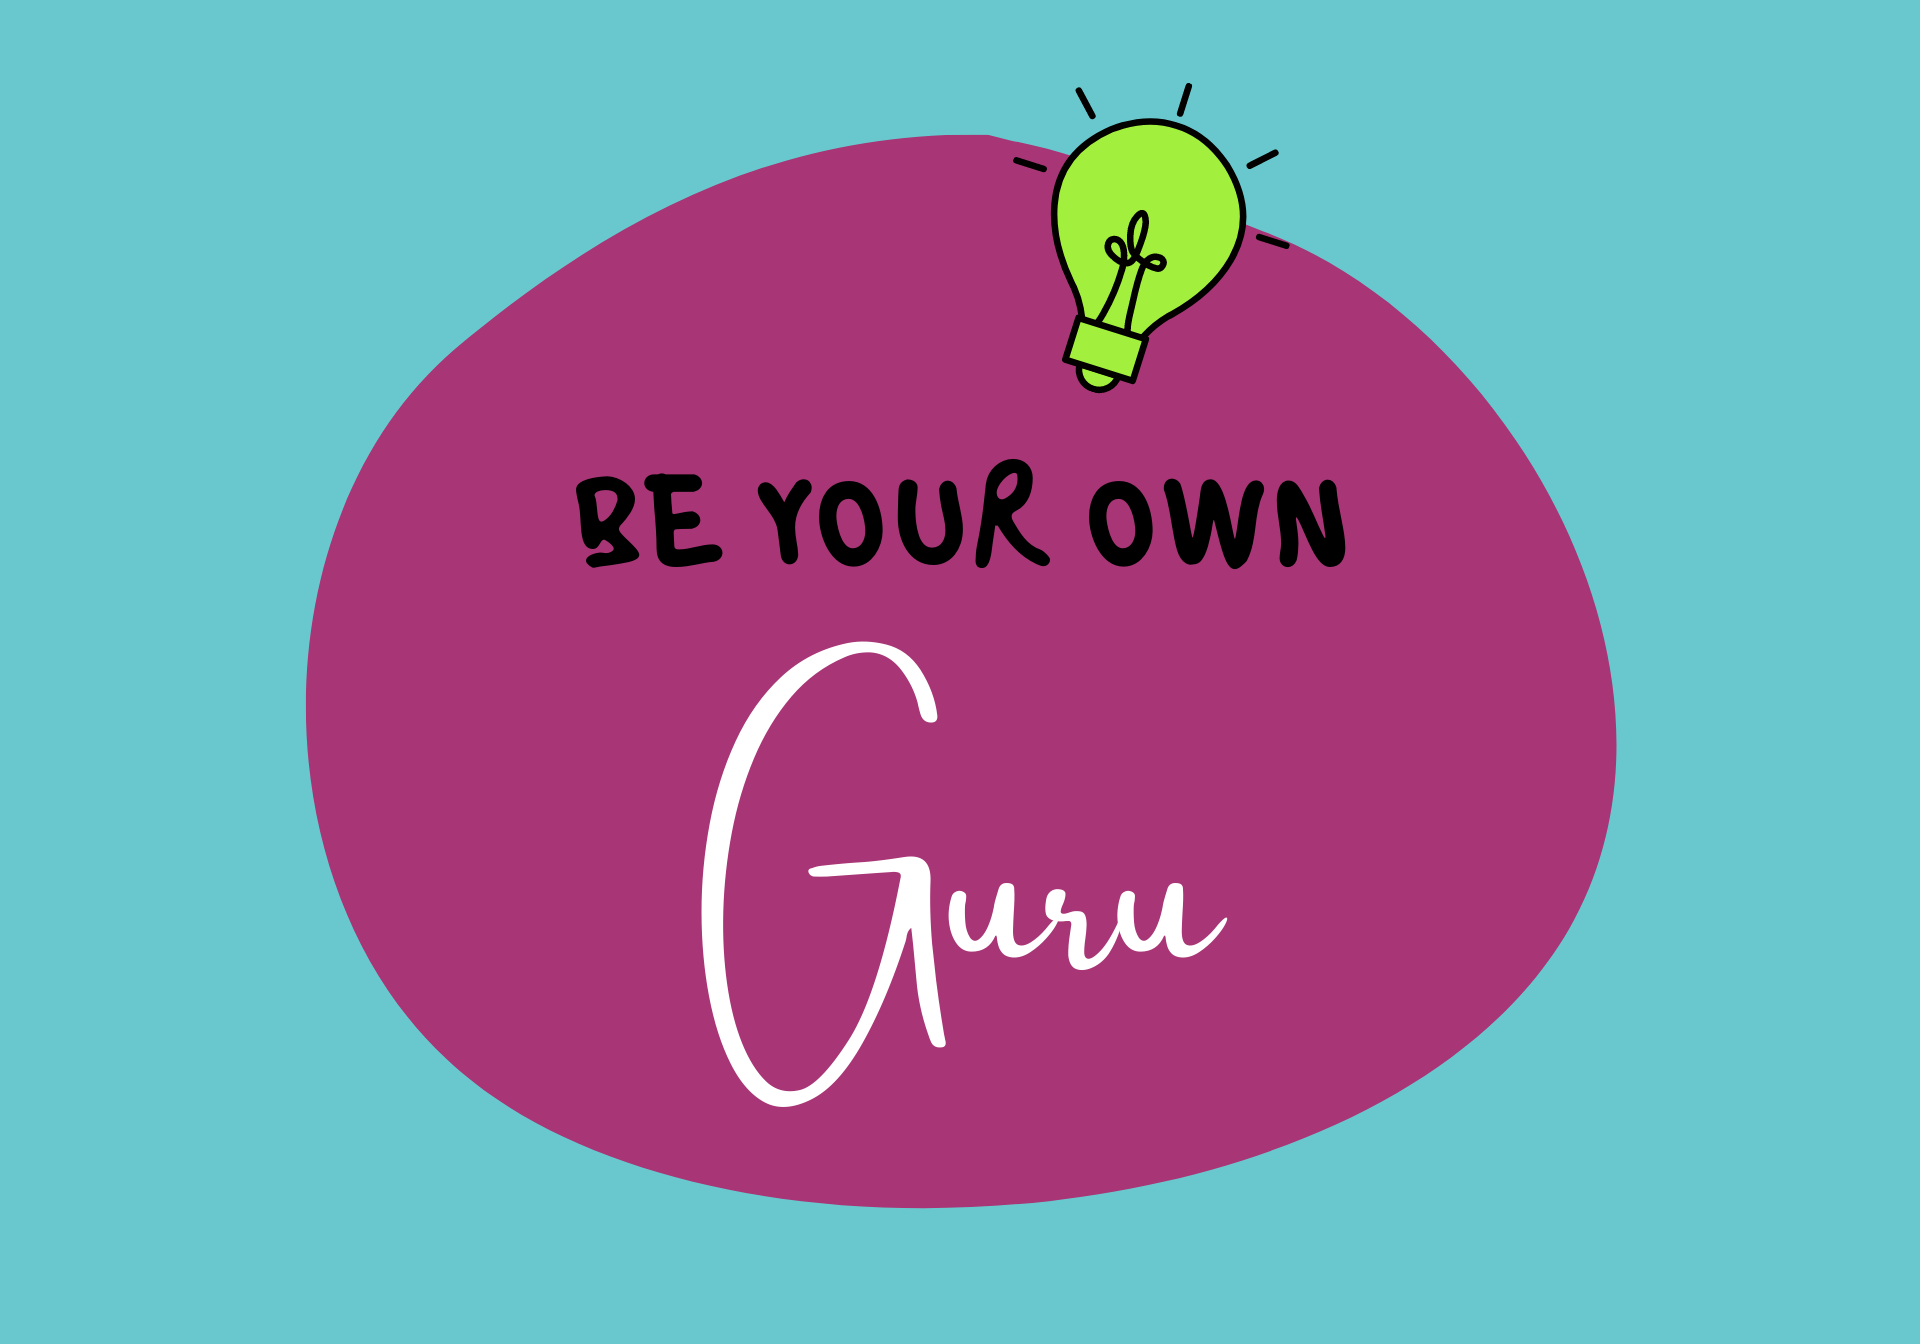 Be Your Own Guru